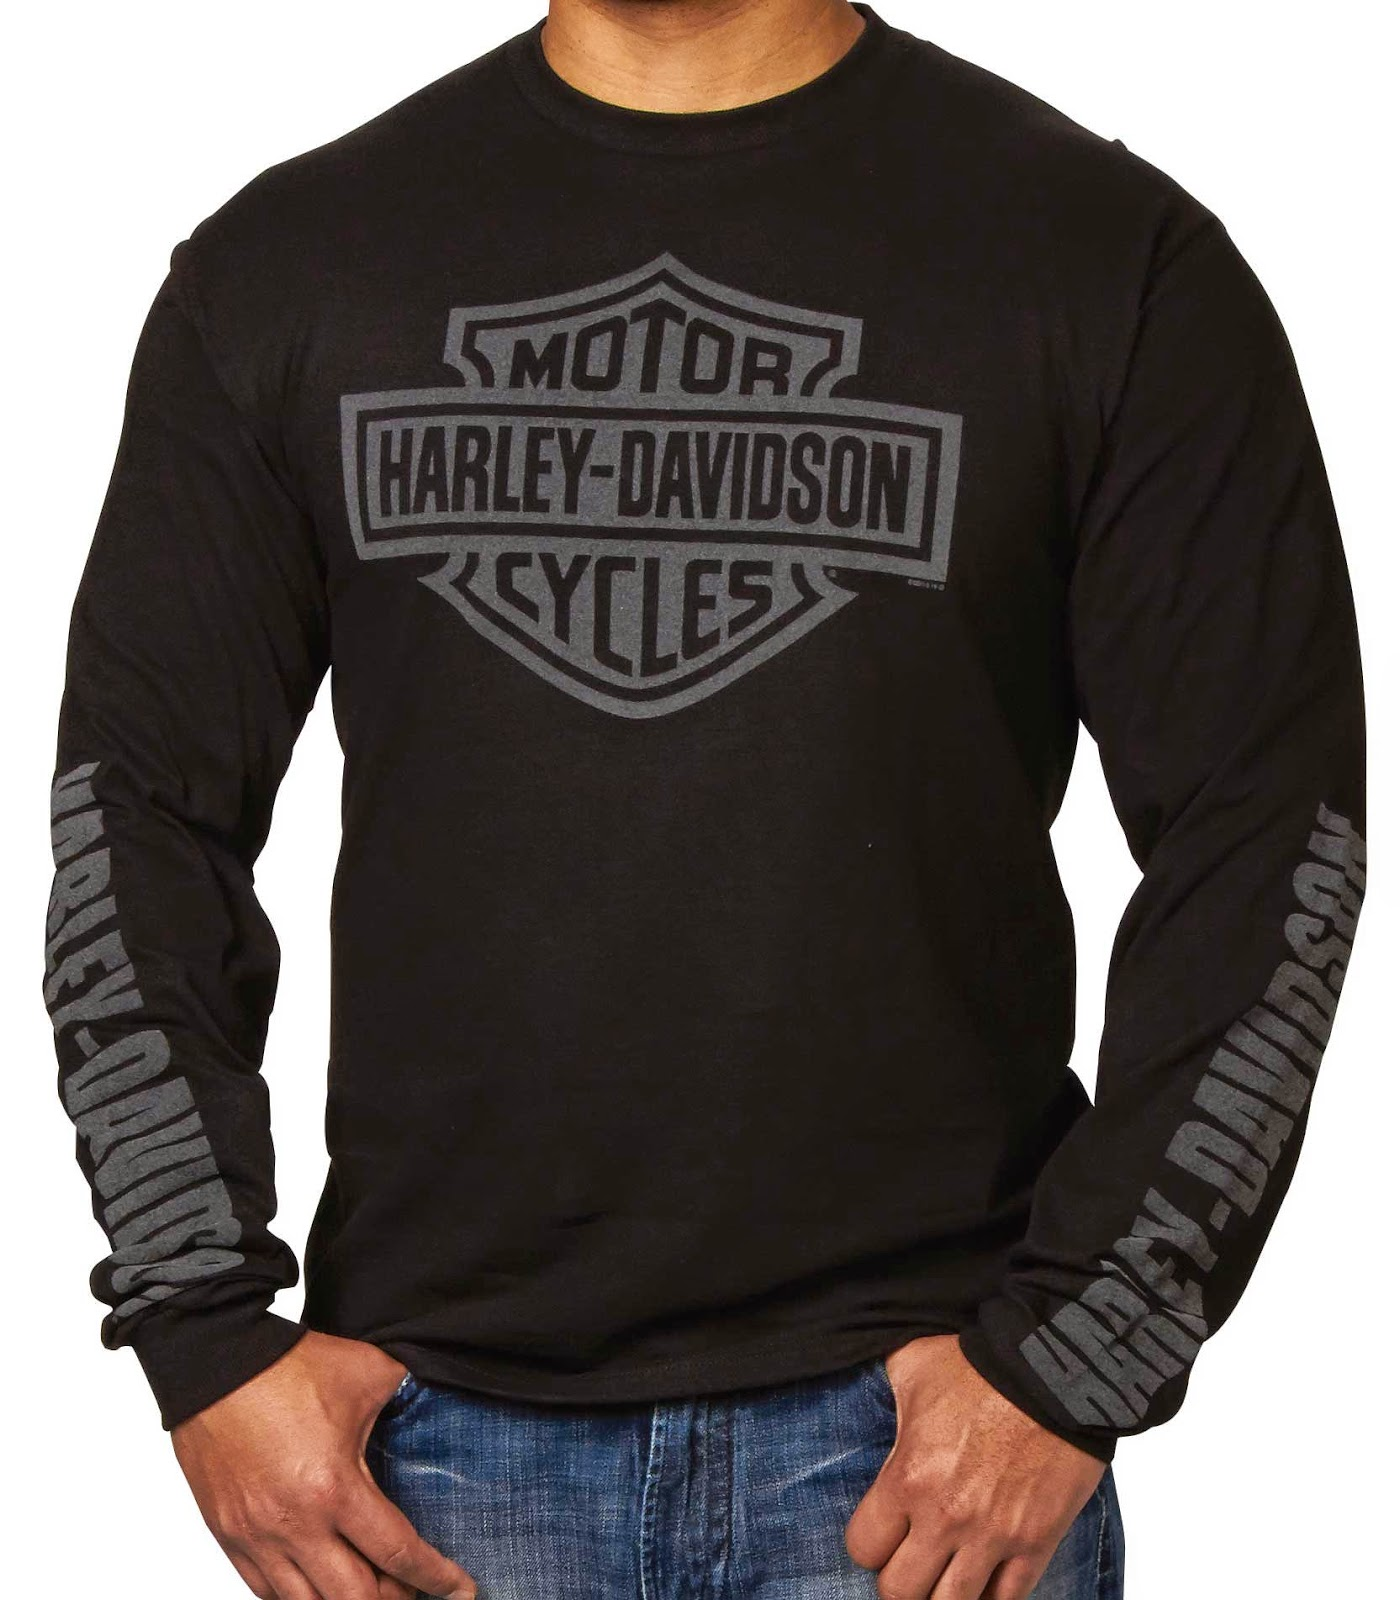 Cheap Harley Davidson Shirts